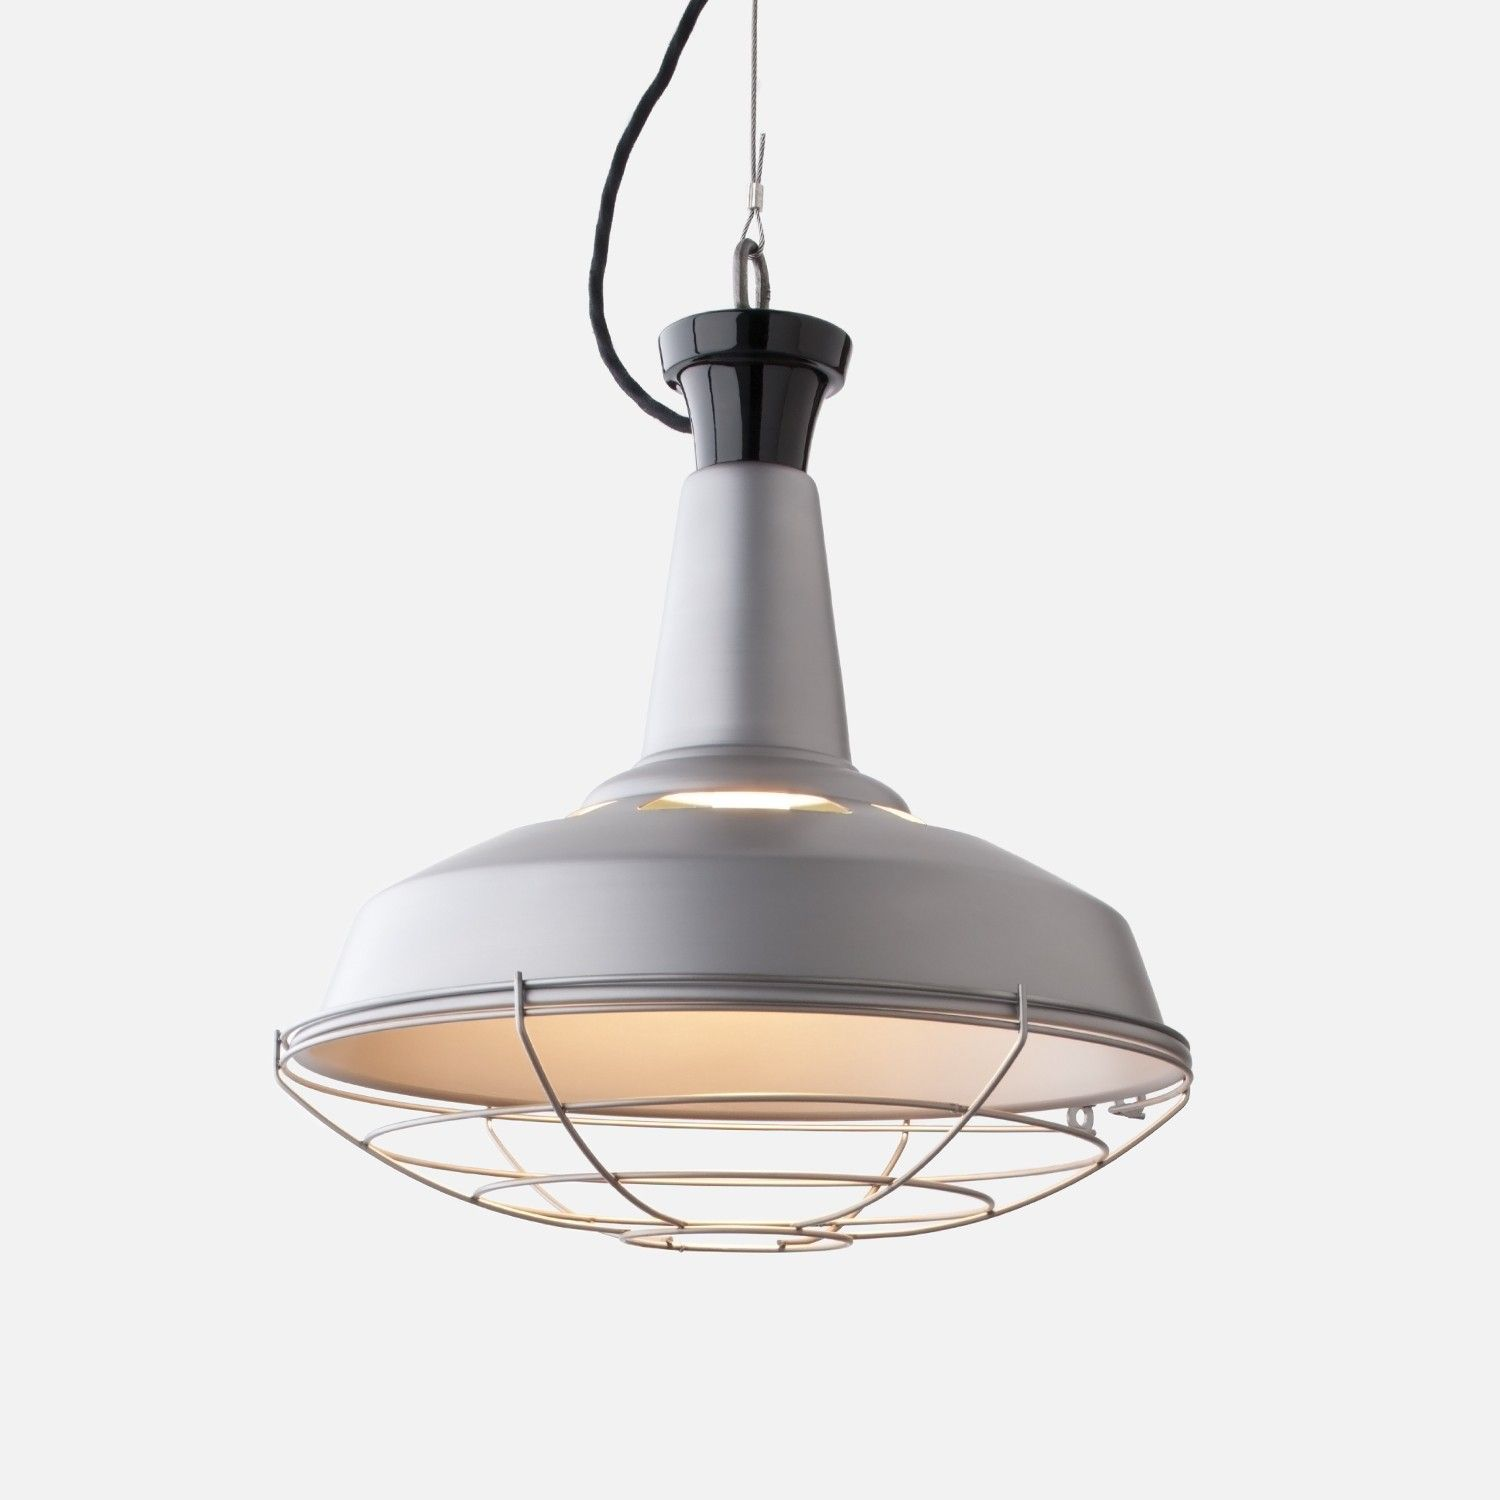 Factory Light 5 Cable Pendant  990 Wish List  Factory